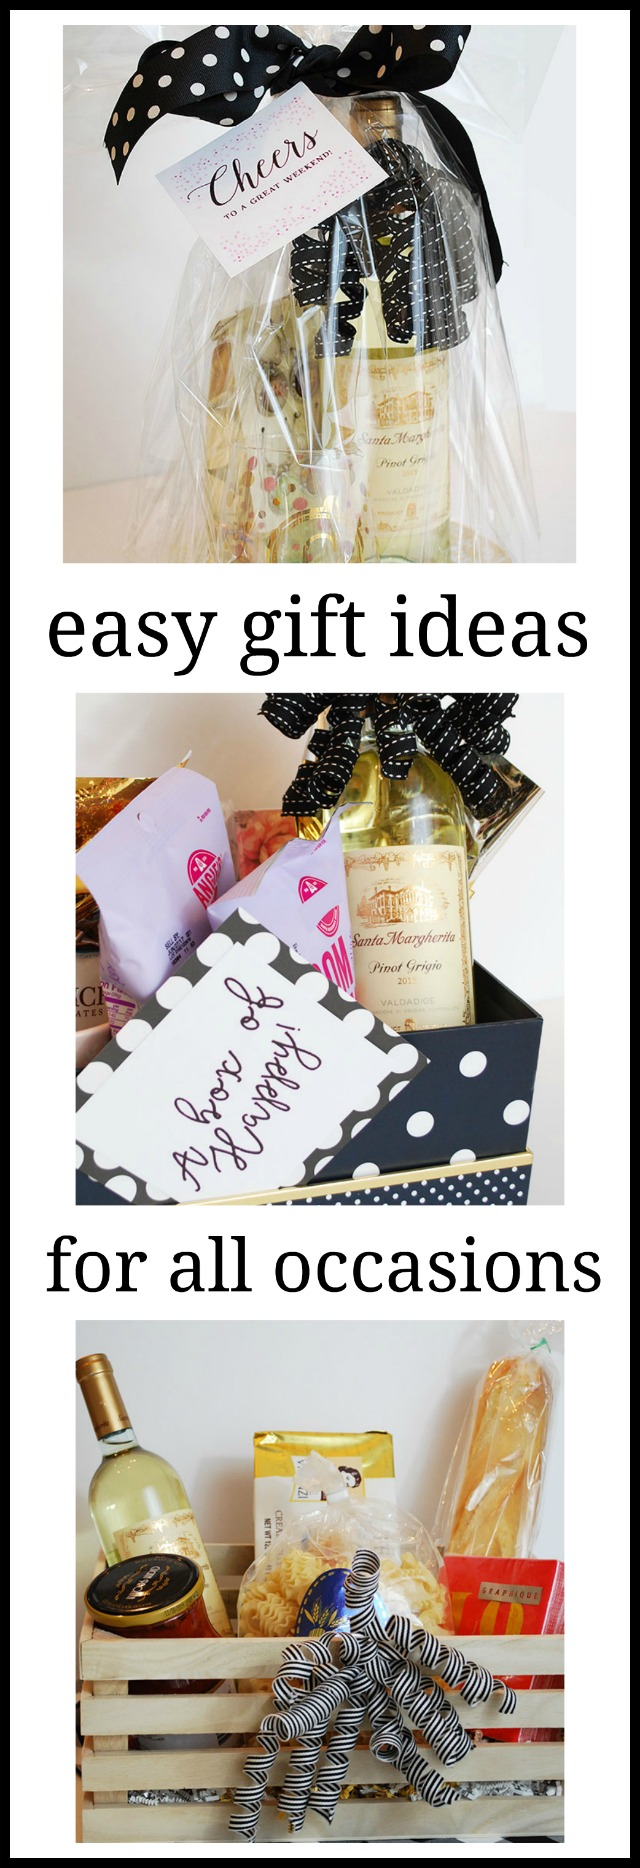 Easy Gift Ideas for all occasions, Dinner in a Basket, a Box of Happy and a weekend hostess gift all with the perfect wine. #ad